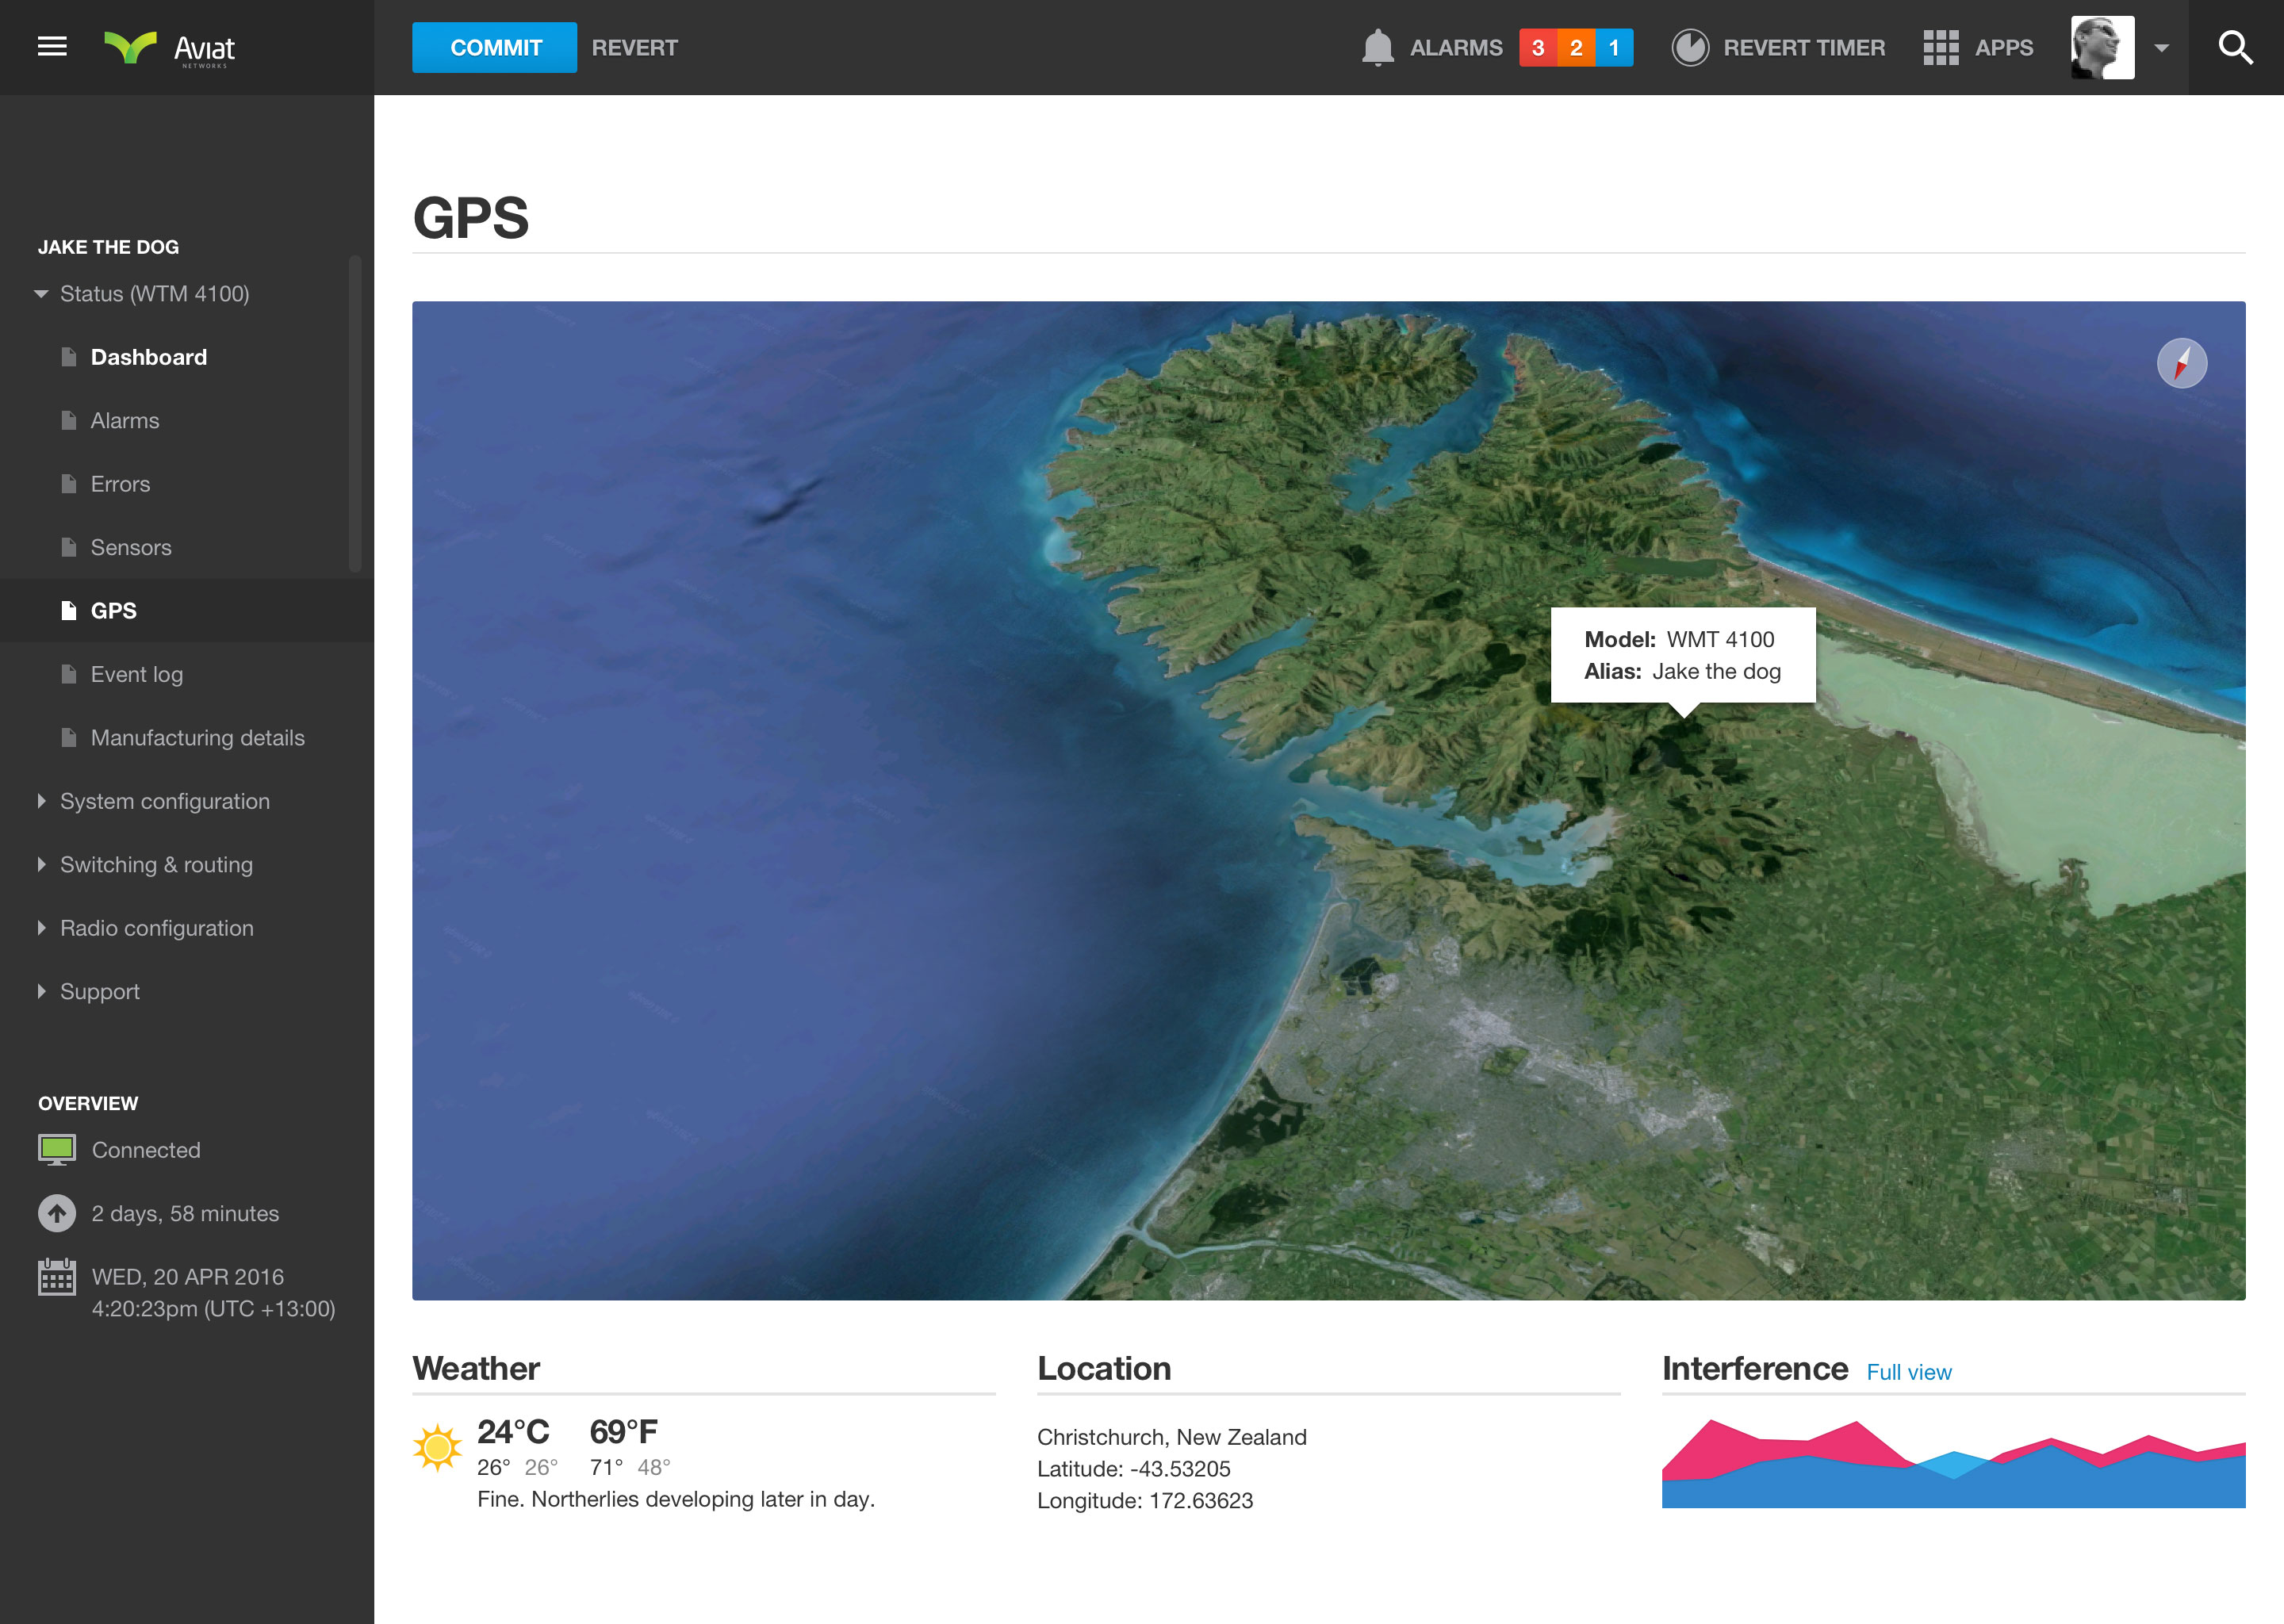 Networking dashboard GPS